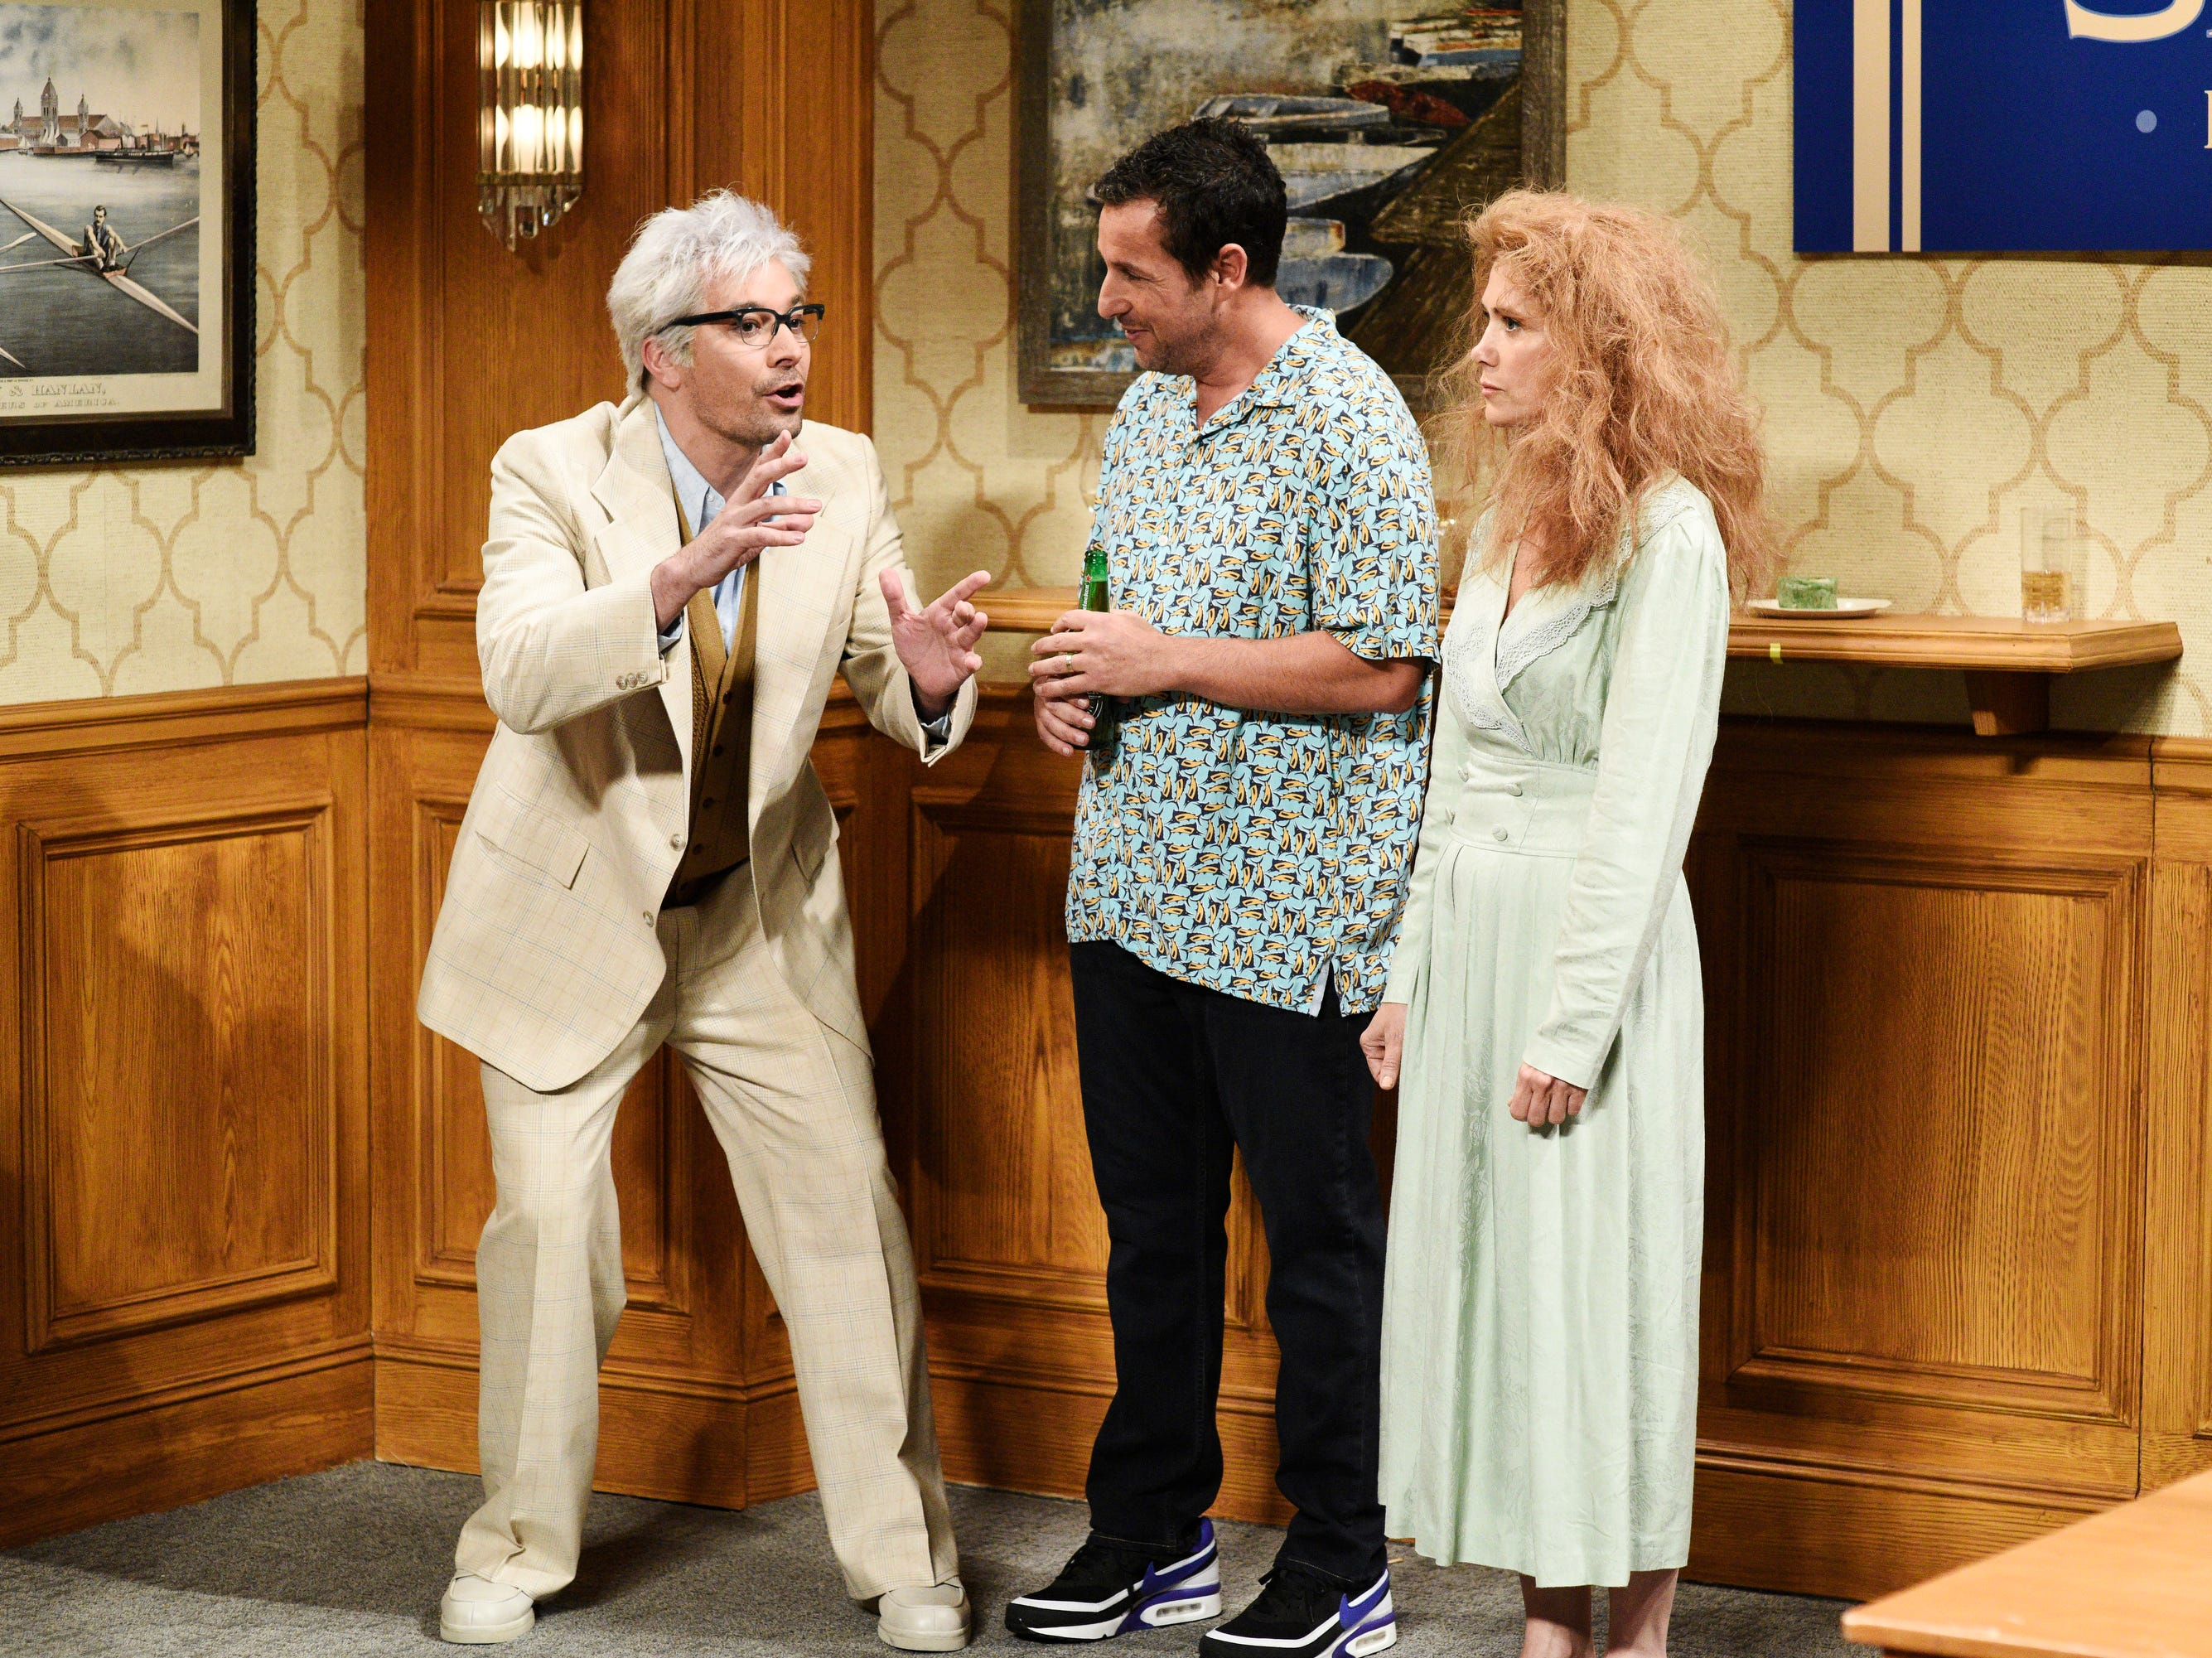 """The show also included two more surprise guests, former """"SNL"""" stars Jimmy Fallon (left) and Kristen Wiig (right), playing Sandler family members during a family reunion sketch."""